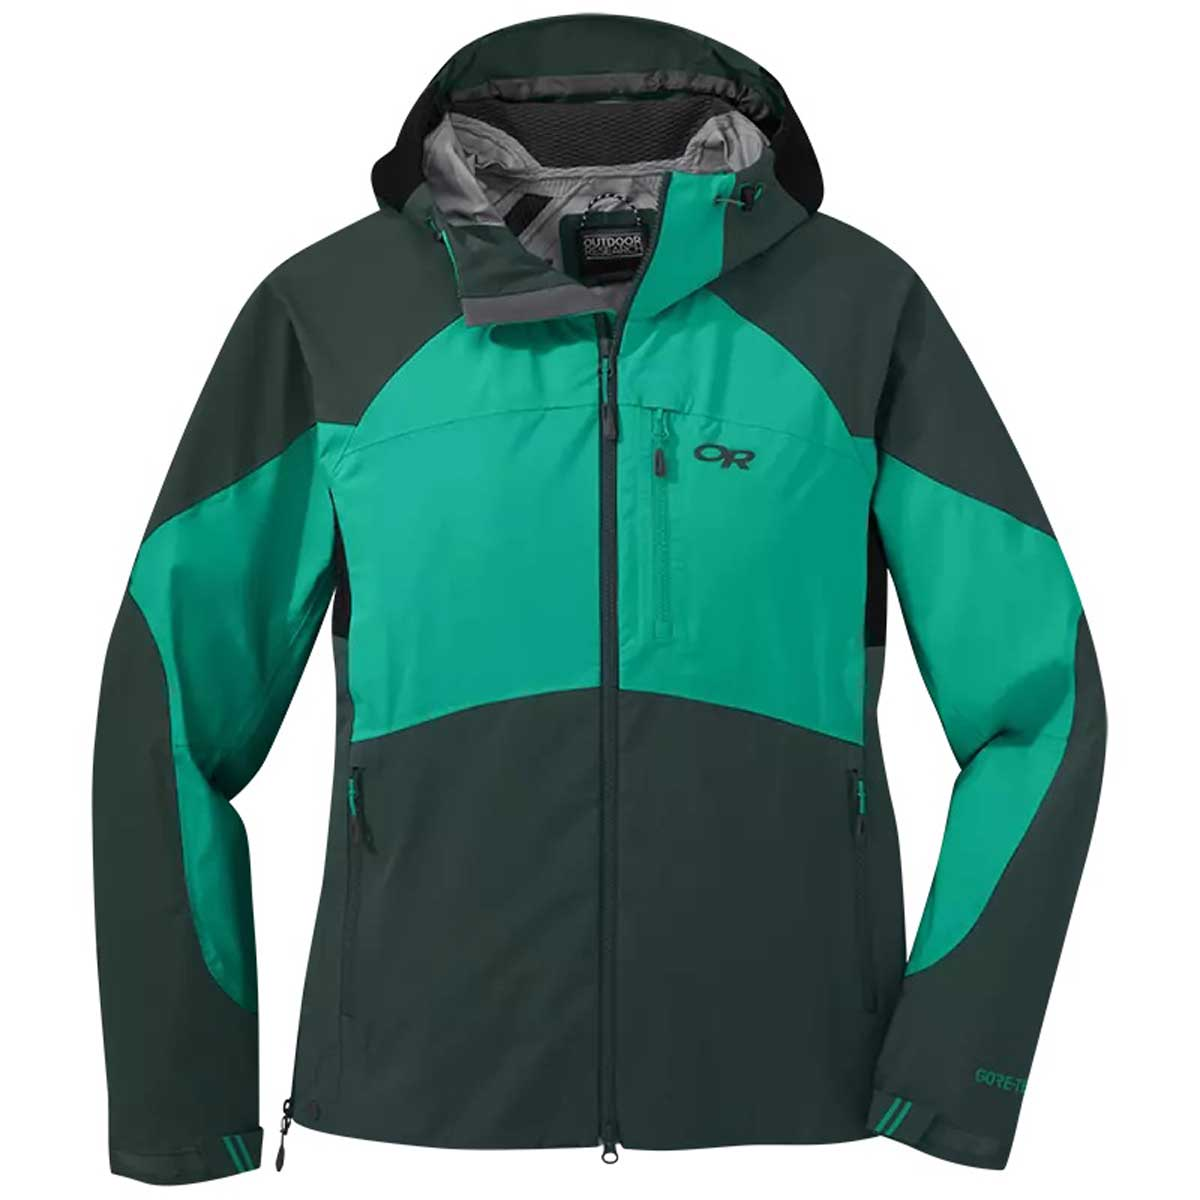 Outdoor Research Hemispheres Women's Jacket in Fir and Jade